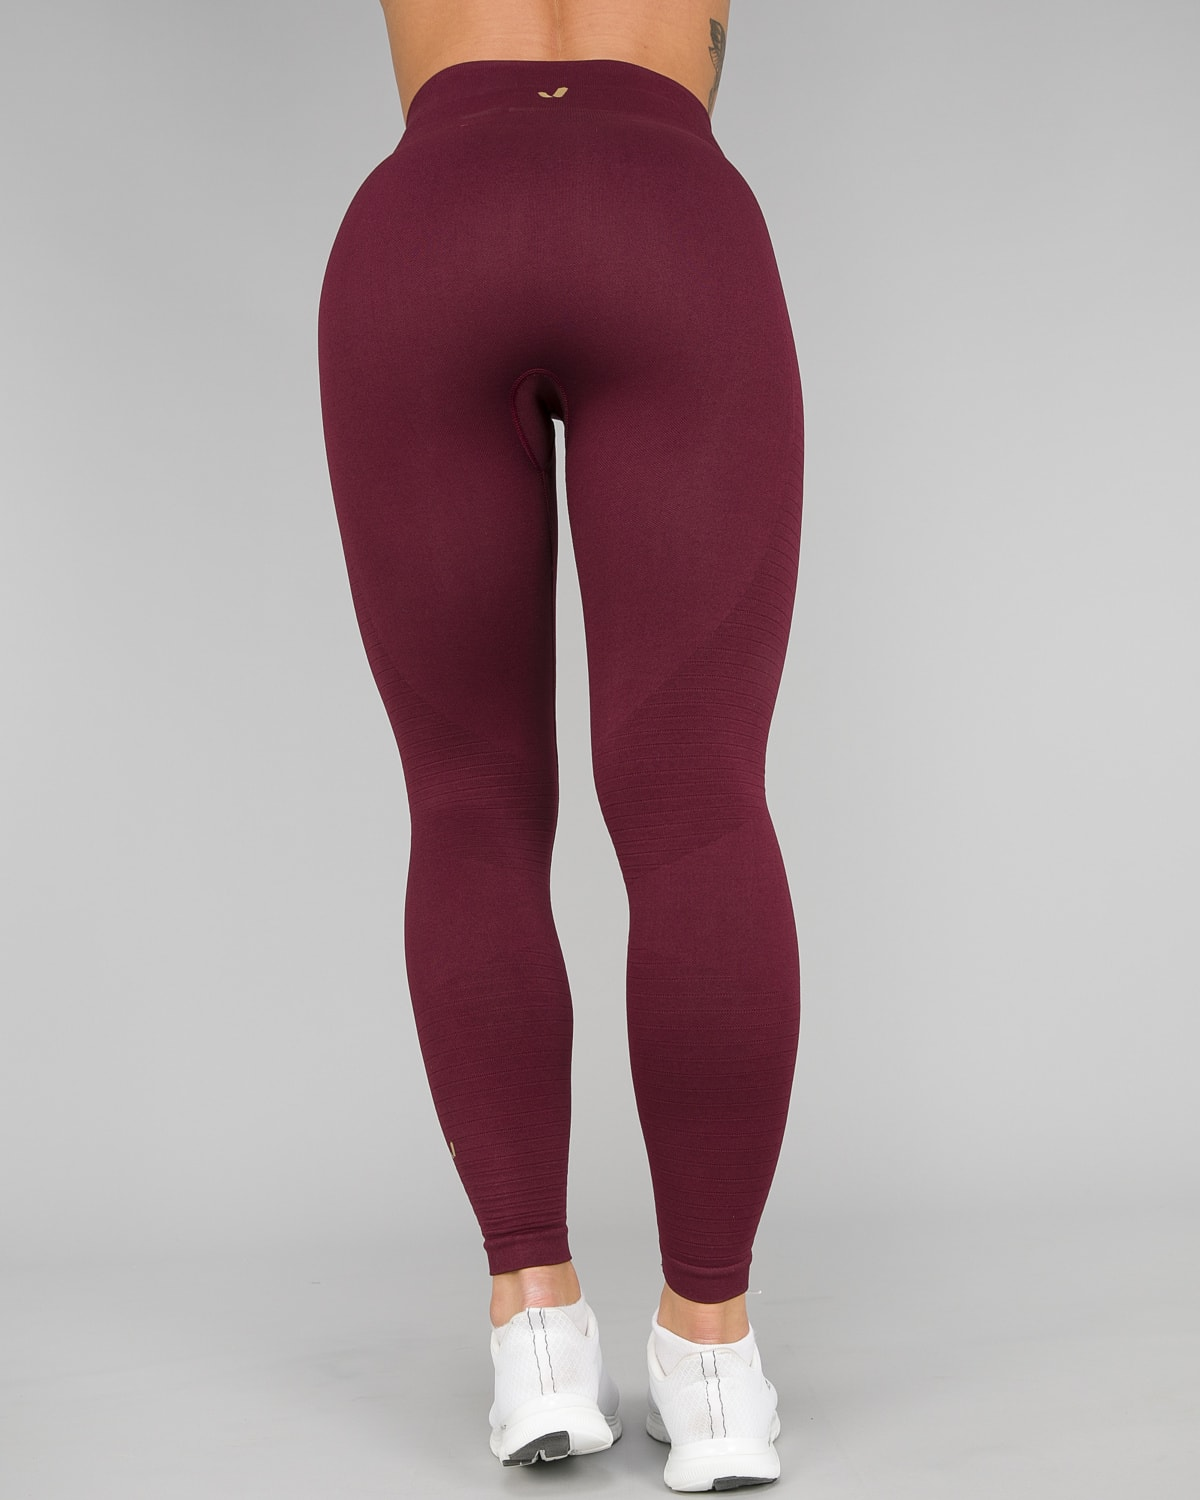 Jerf Gela 2.0 tights Maroon13